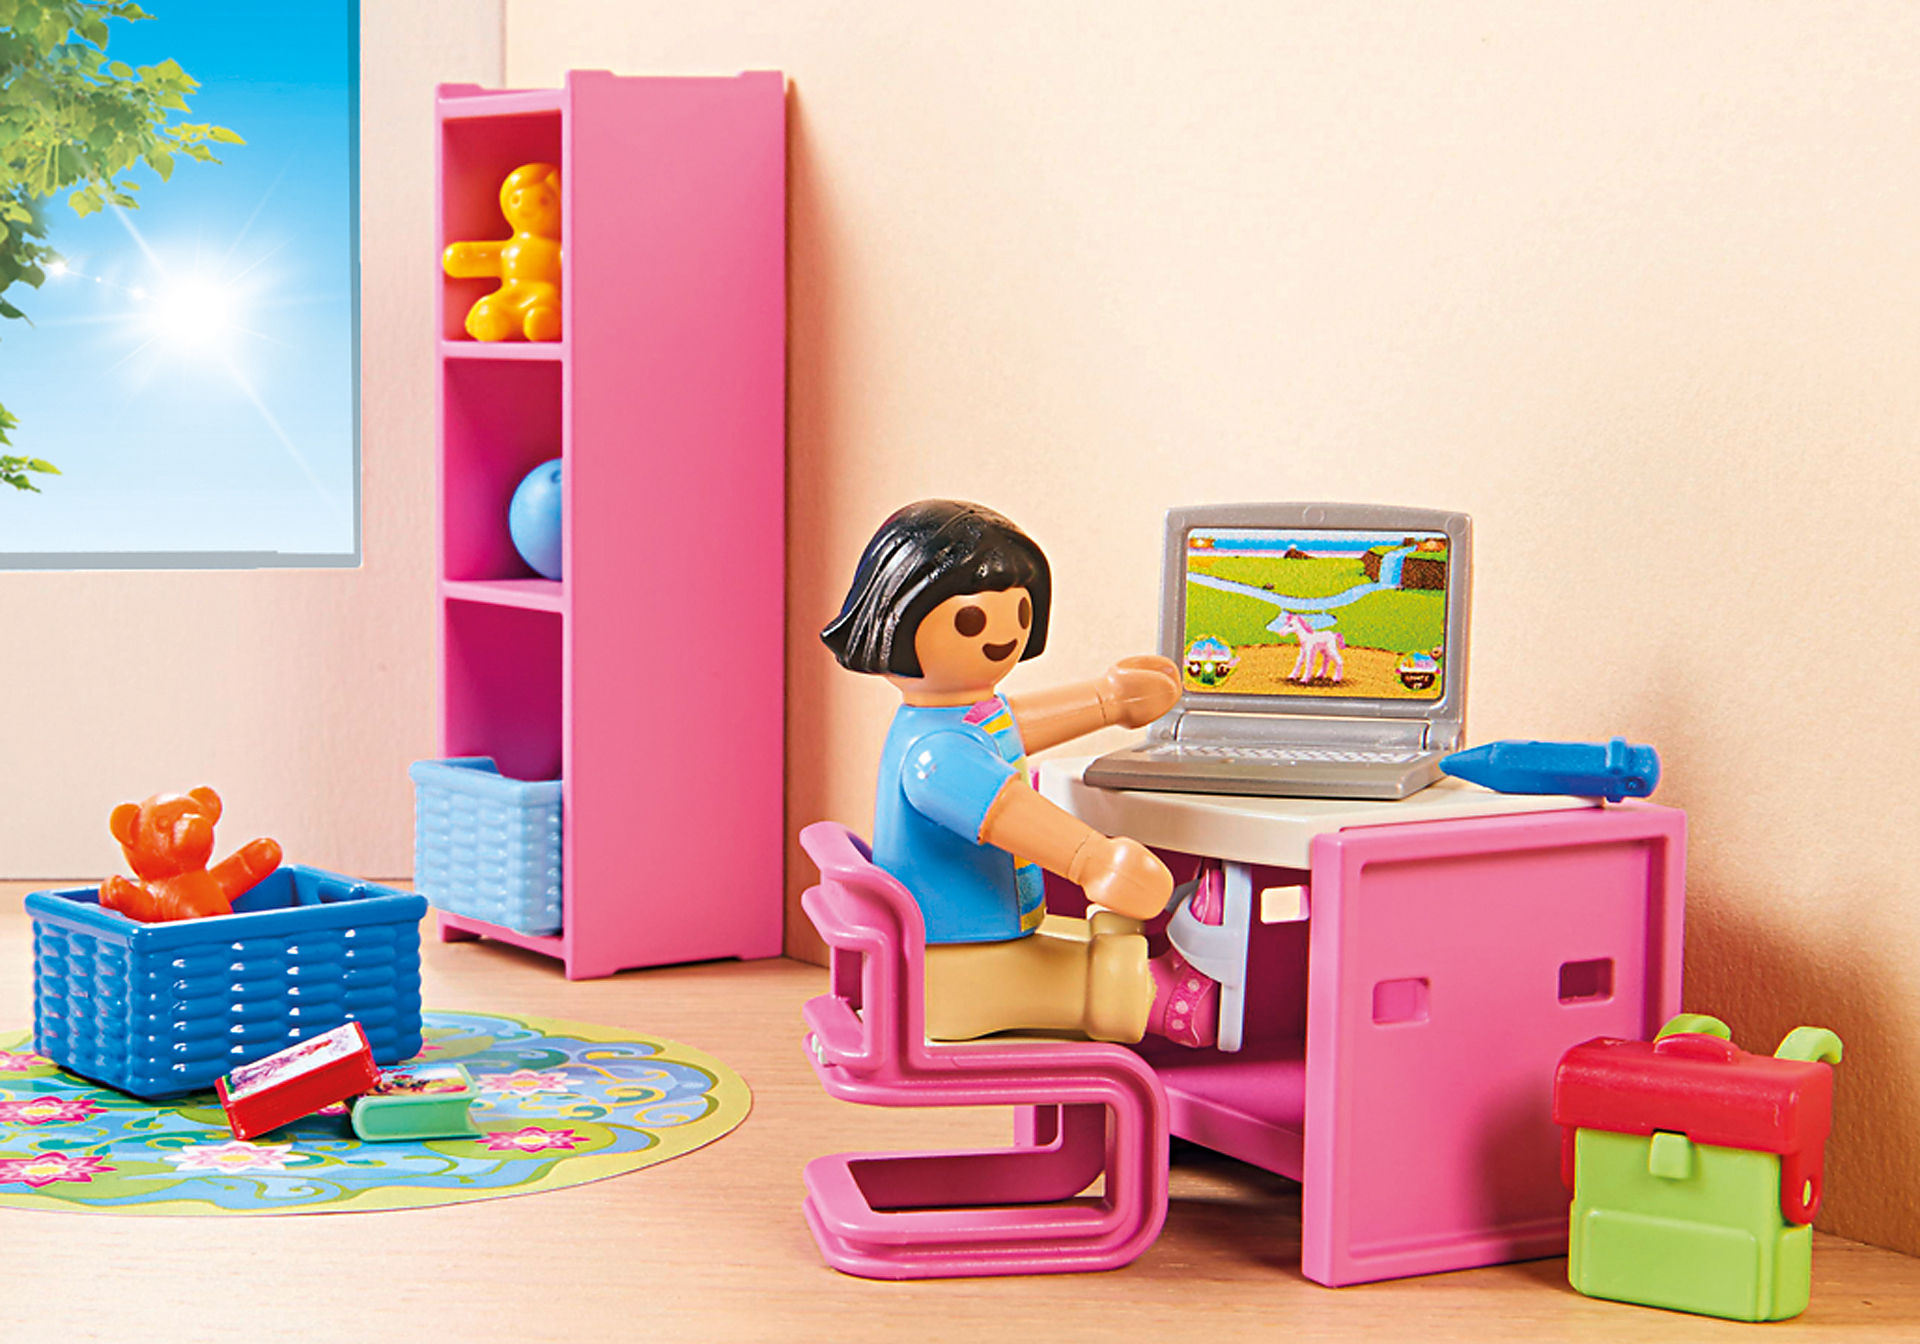 http://media.playmobil.com/i/playmobil/9270_product_extra2/Fröhliches Kinderzimmer